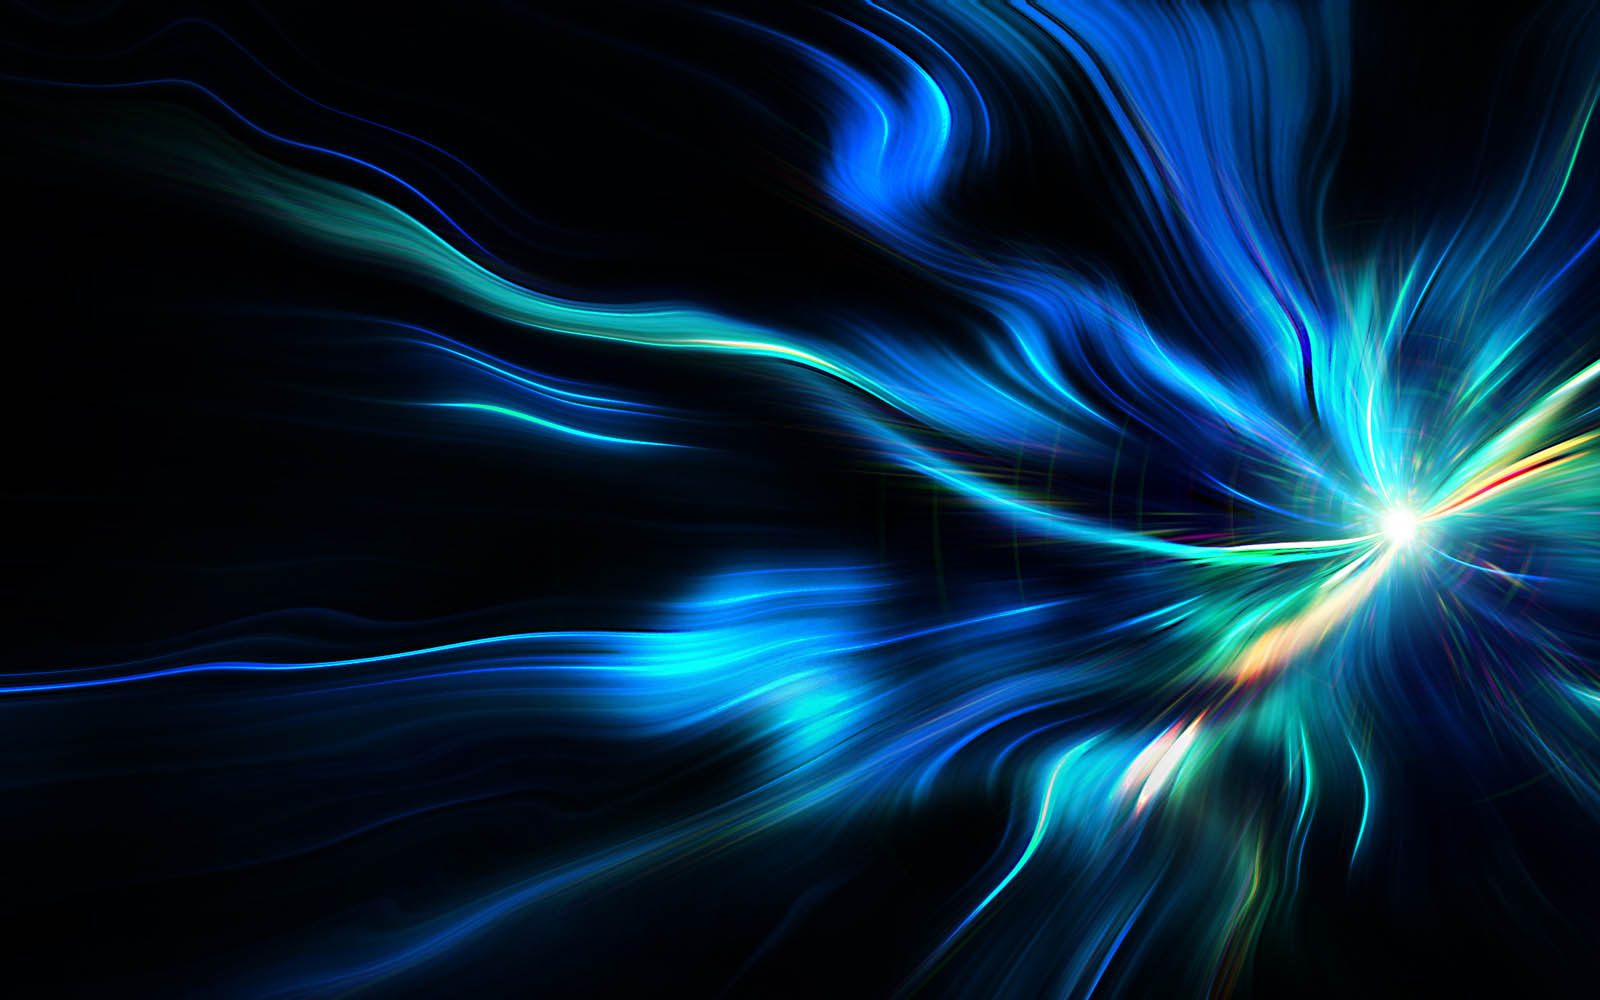 Shining 3DDesktop Wallpapers Shining 3D Desktop Backgrounds 1600x1000